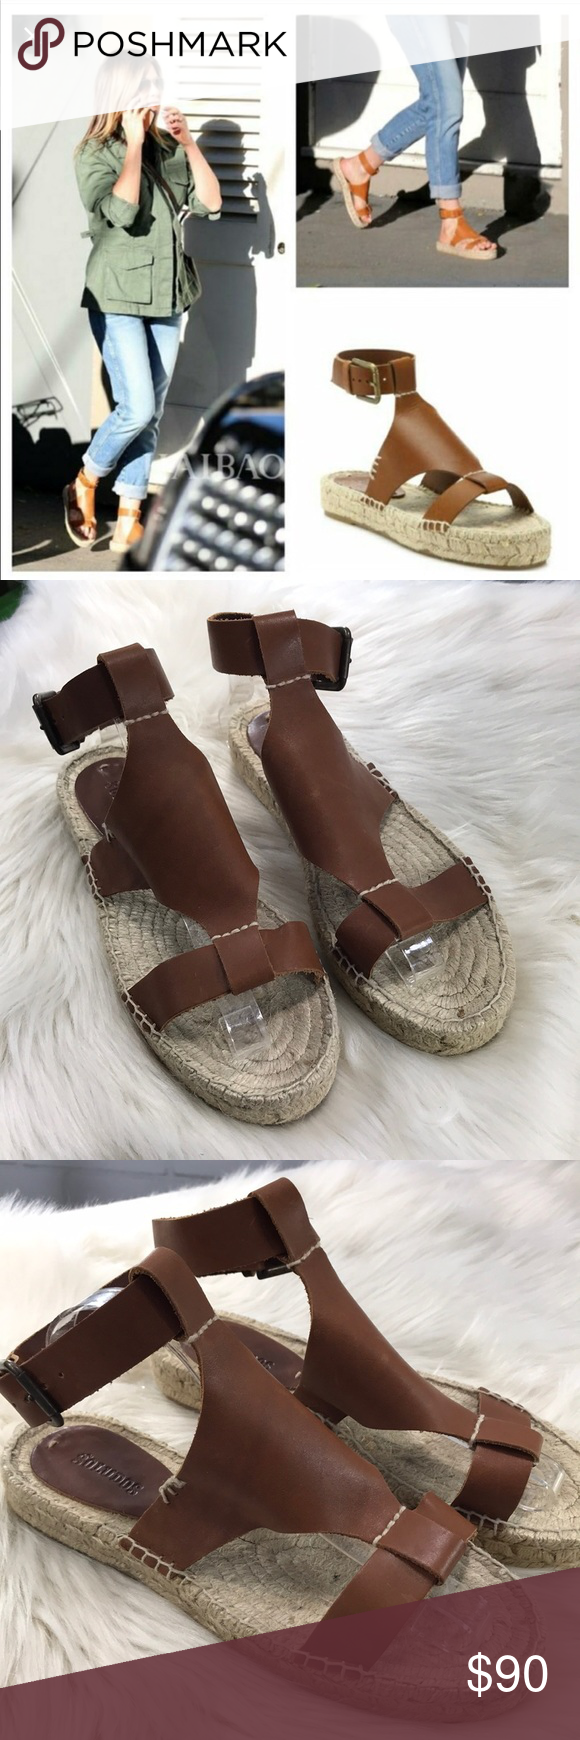 66be220fb02 Soludos Banded Shield Open Toe Espadrille Sandals This is a pair of size 8 Soludos  Banded